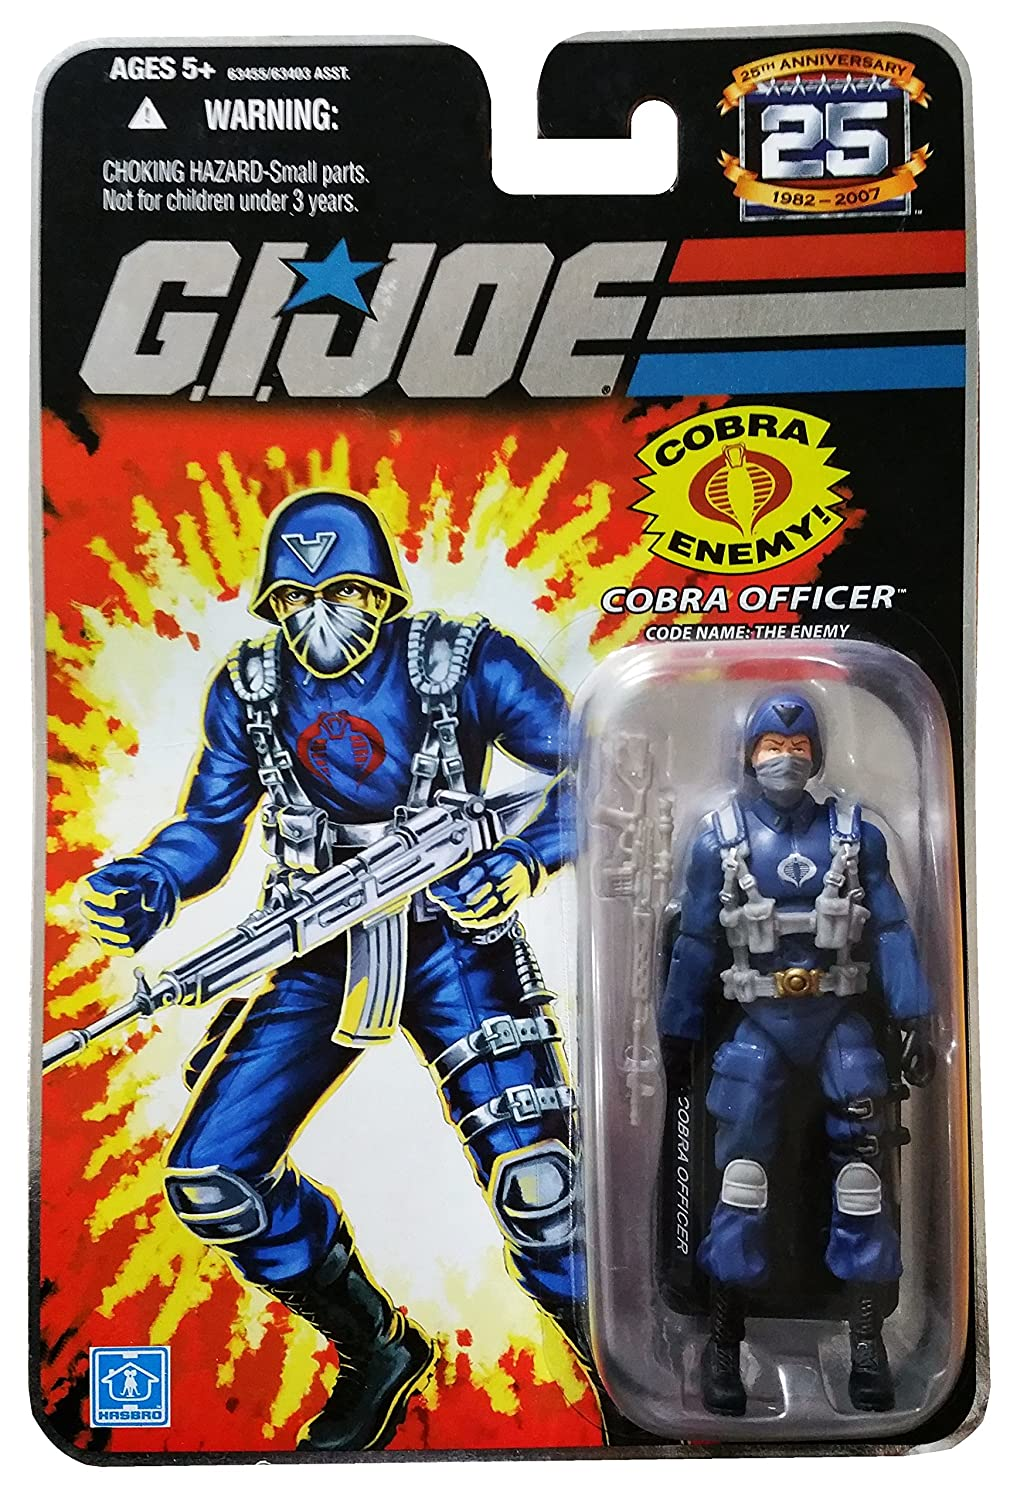 white Joe Cobra Officer rifle replacement accessory Vintage 1982 Hasbro G.I